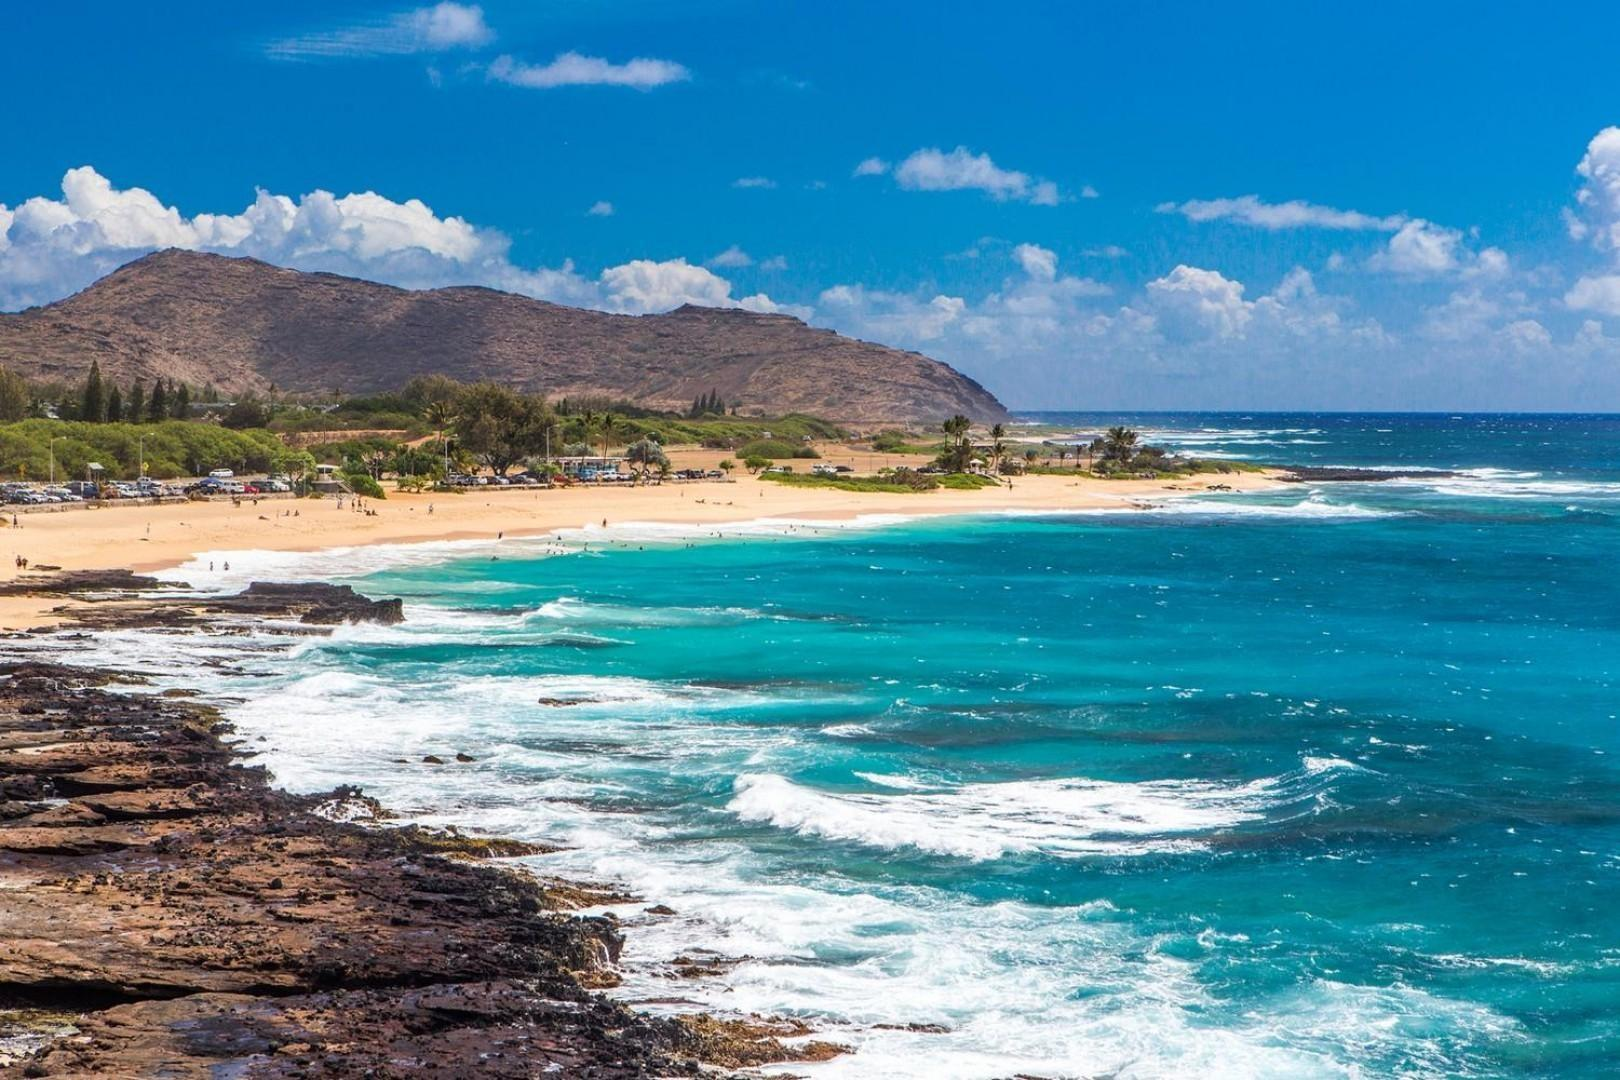 Just a short drive to the famous Sandy Beach!